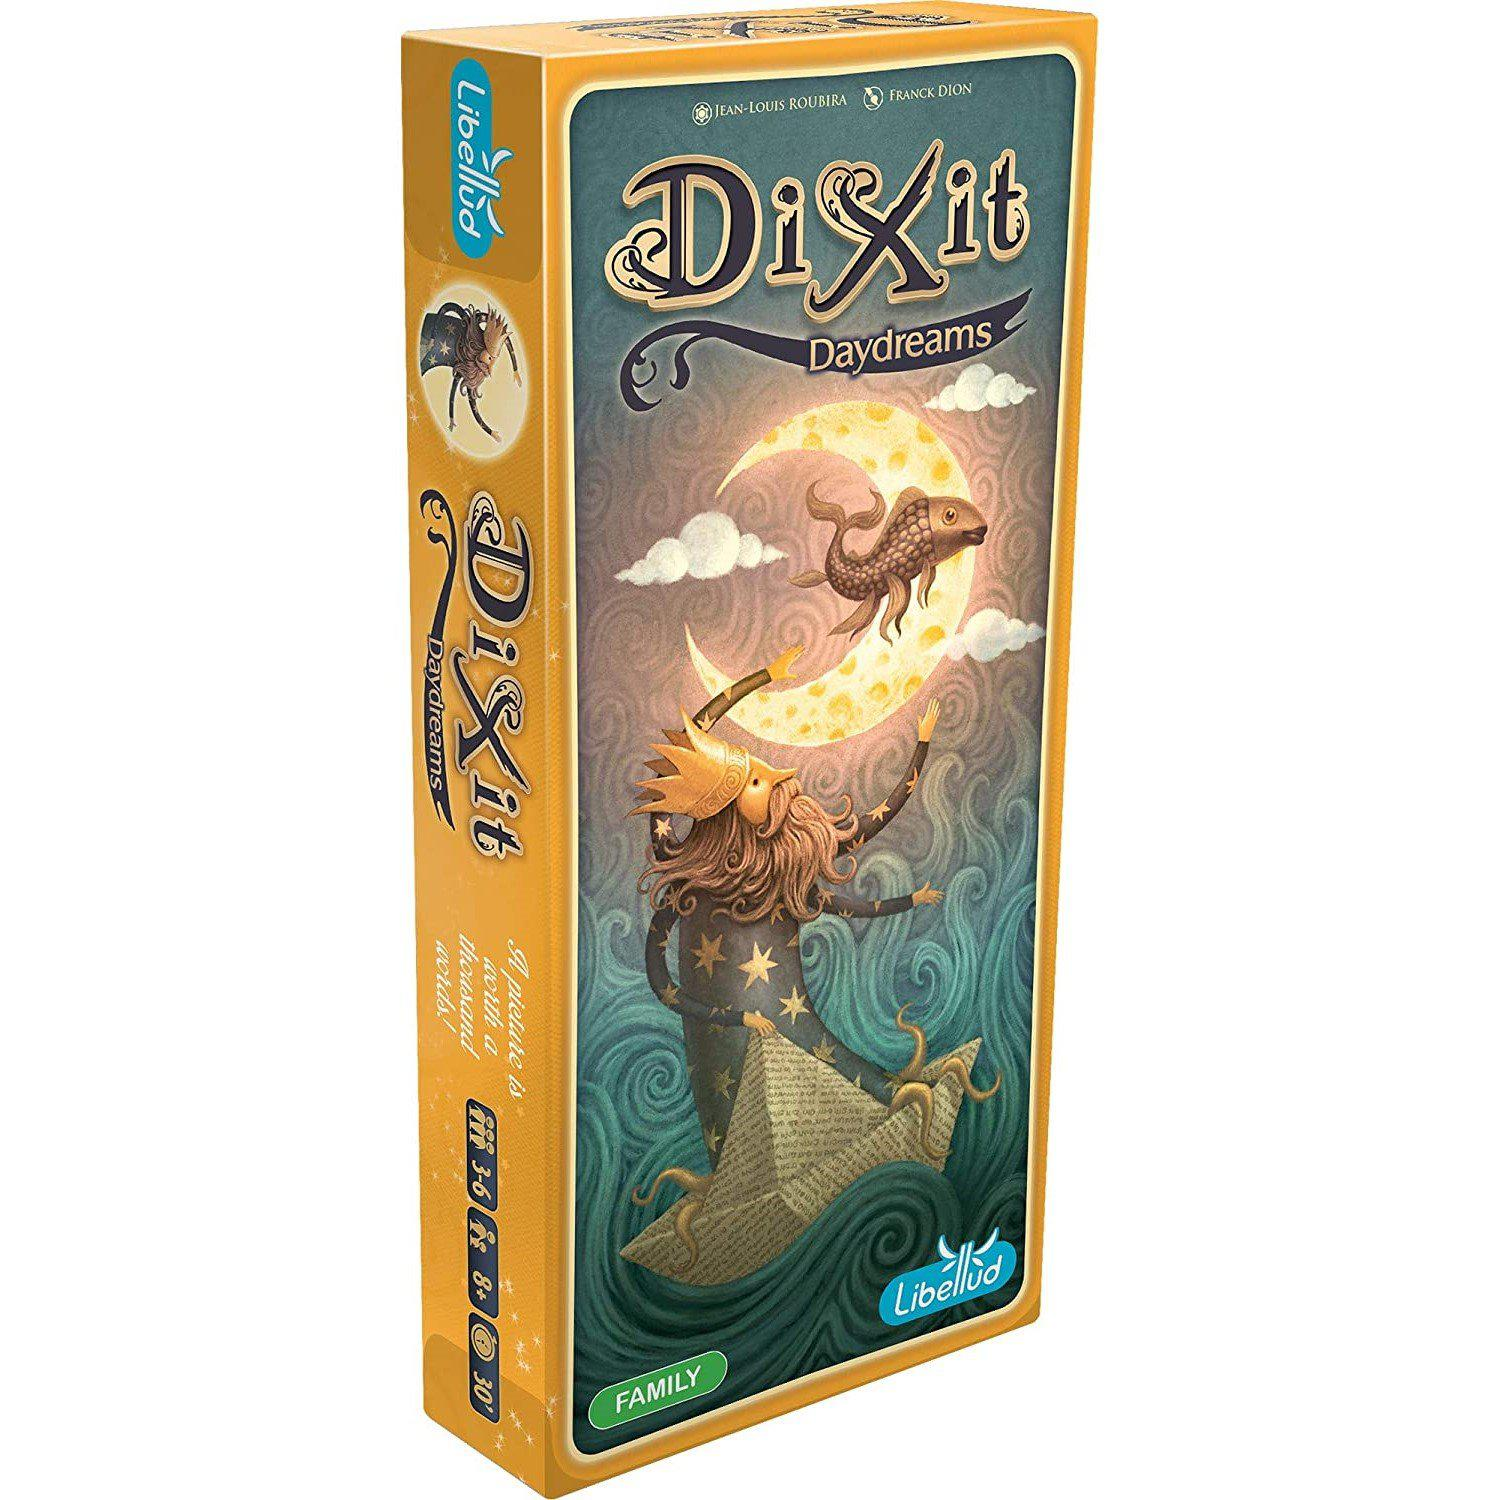 Dixit - Daydreams (Expansion)